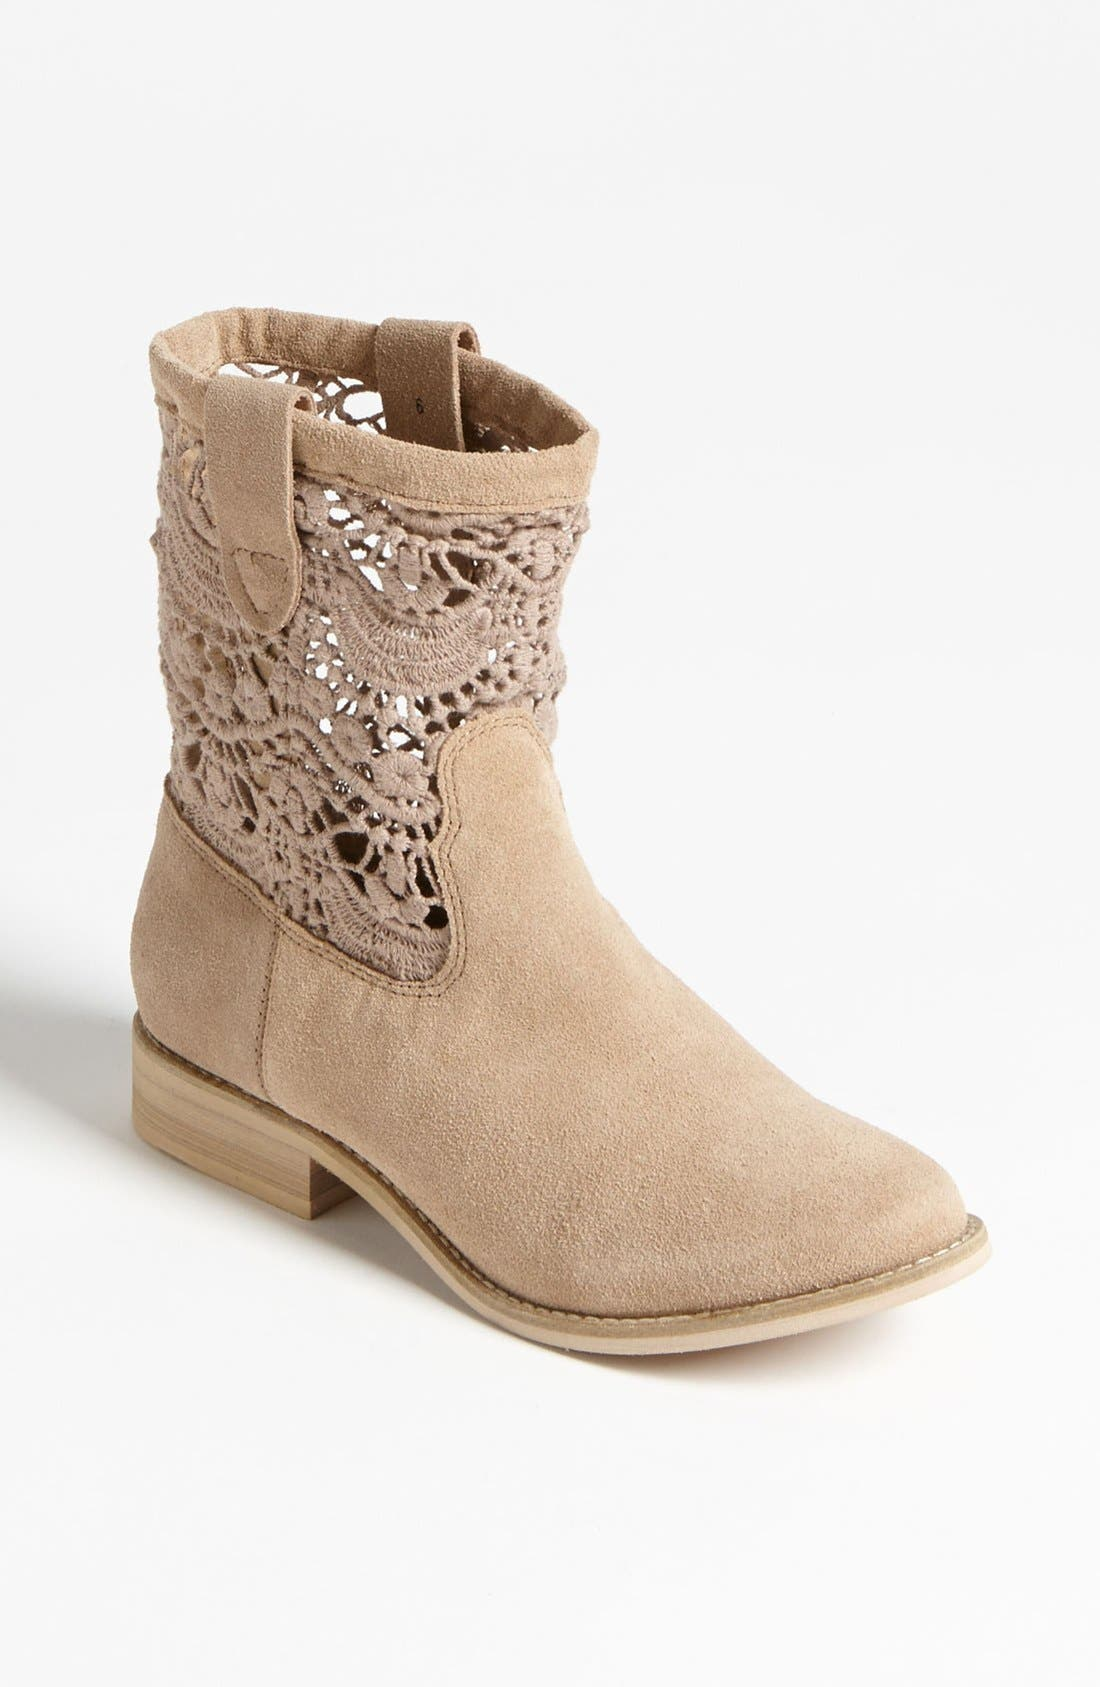 Alternate Image 1 Selected - ZiGi girl 'Cole' Boot